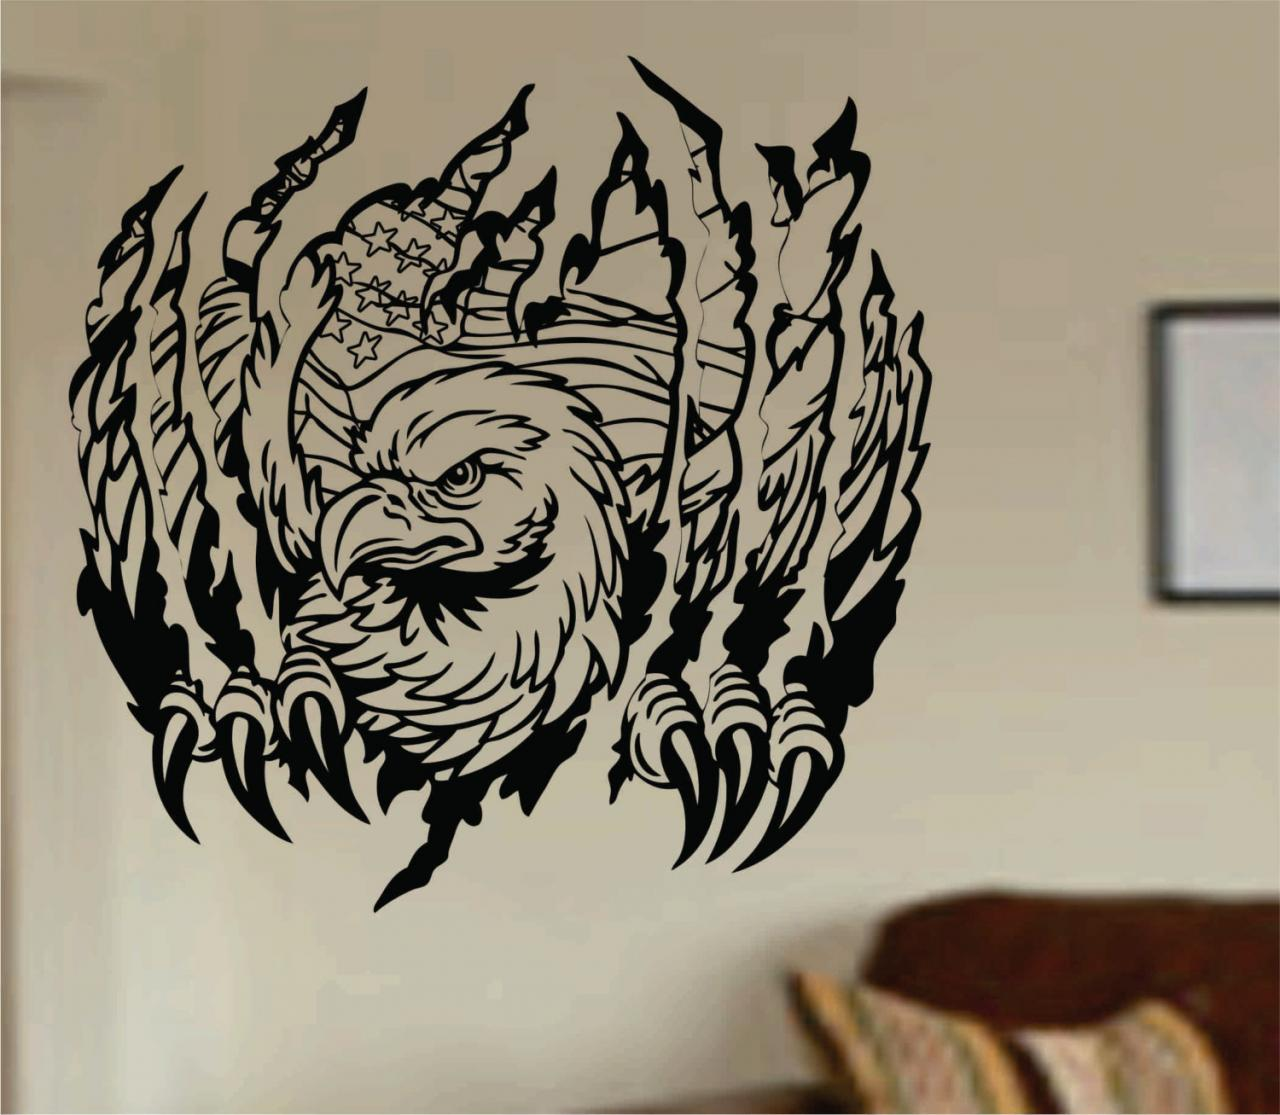 Eagle ripping thru wall mural decal sticker vinyl on luulla for Eagle wall mural